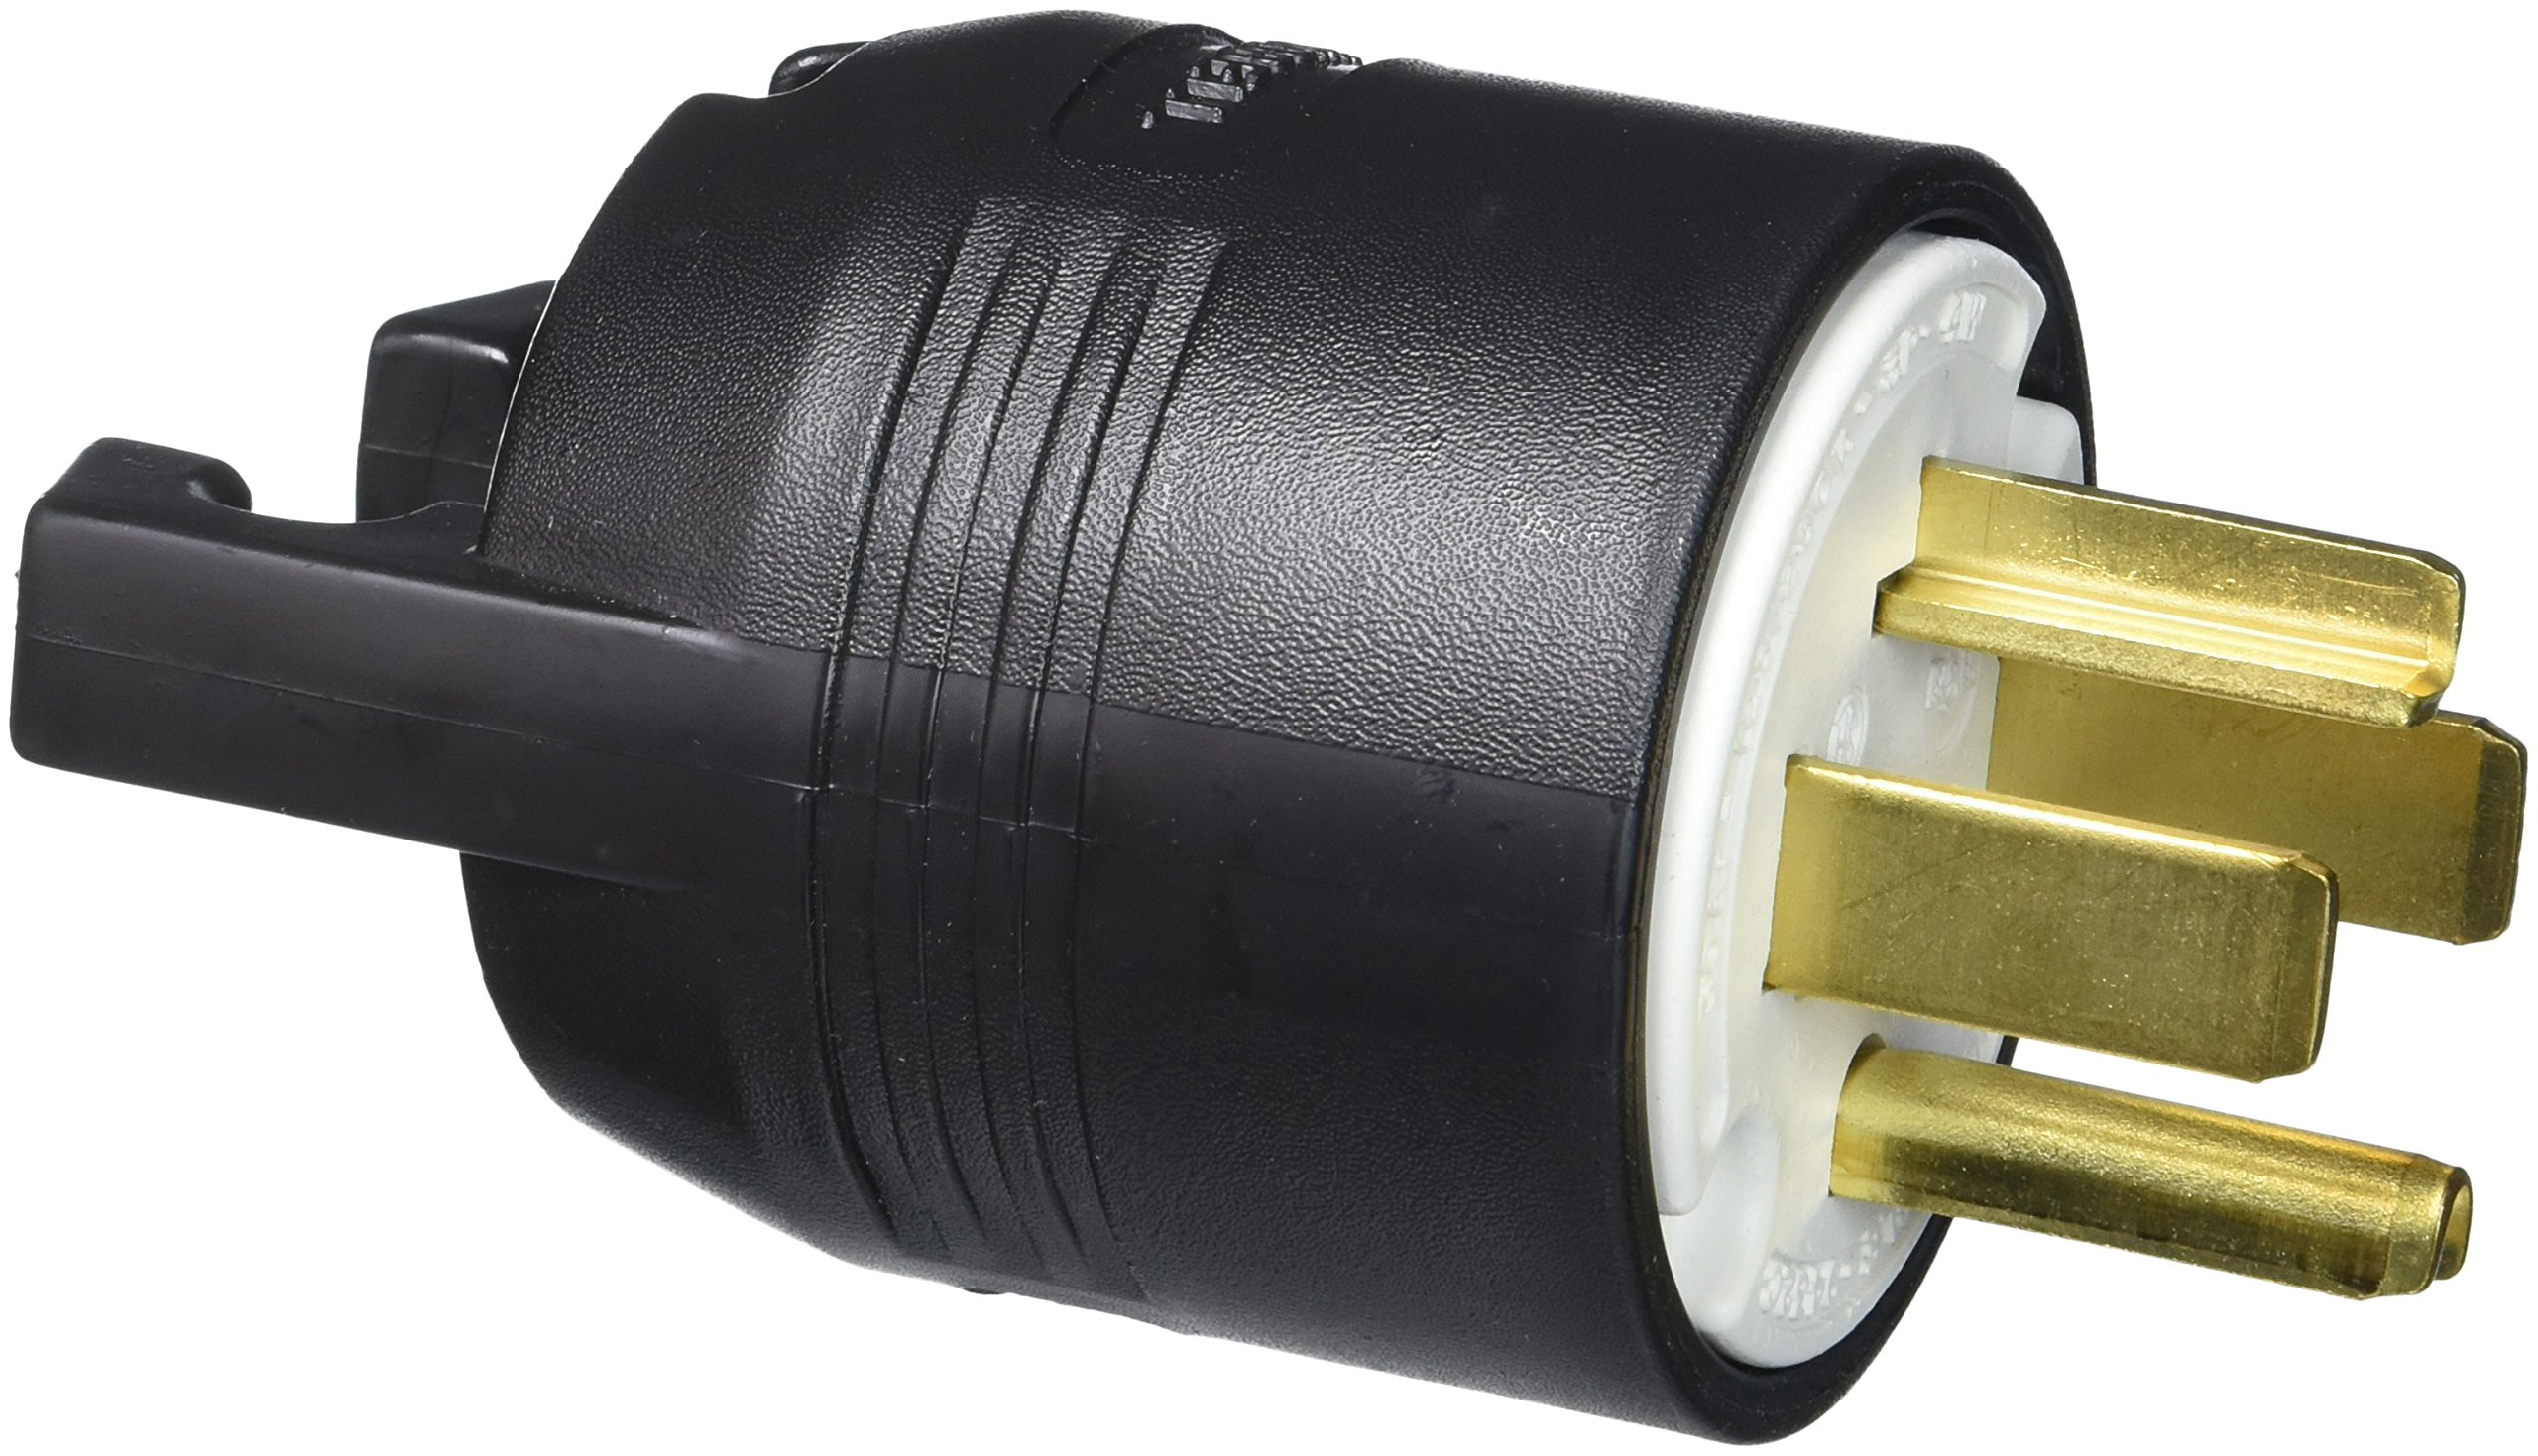 Hubbell HBL9431C Plug, 3 Pole, 4 Wire, 30 amp, 125/250V, 14-30P